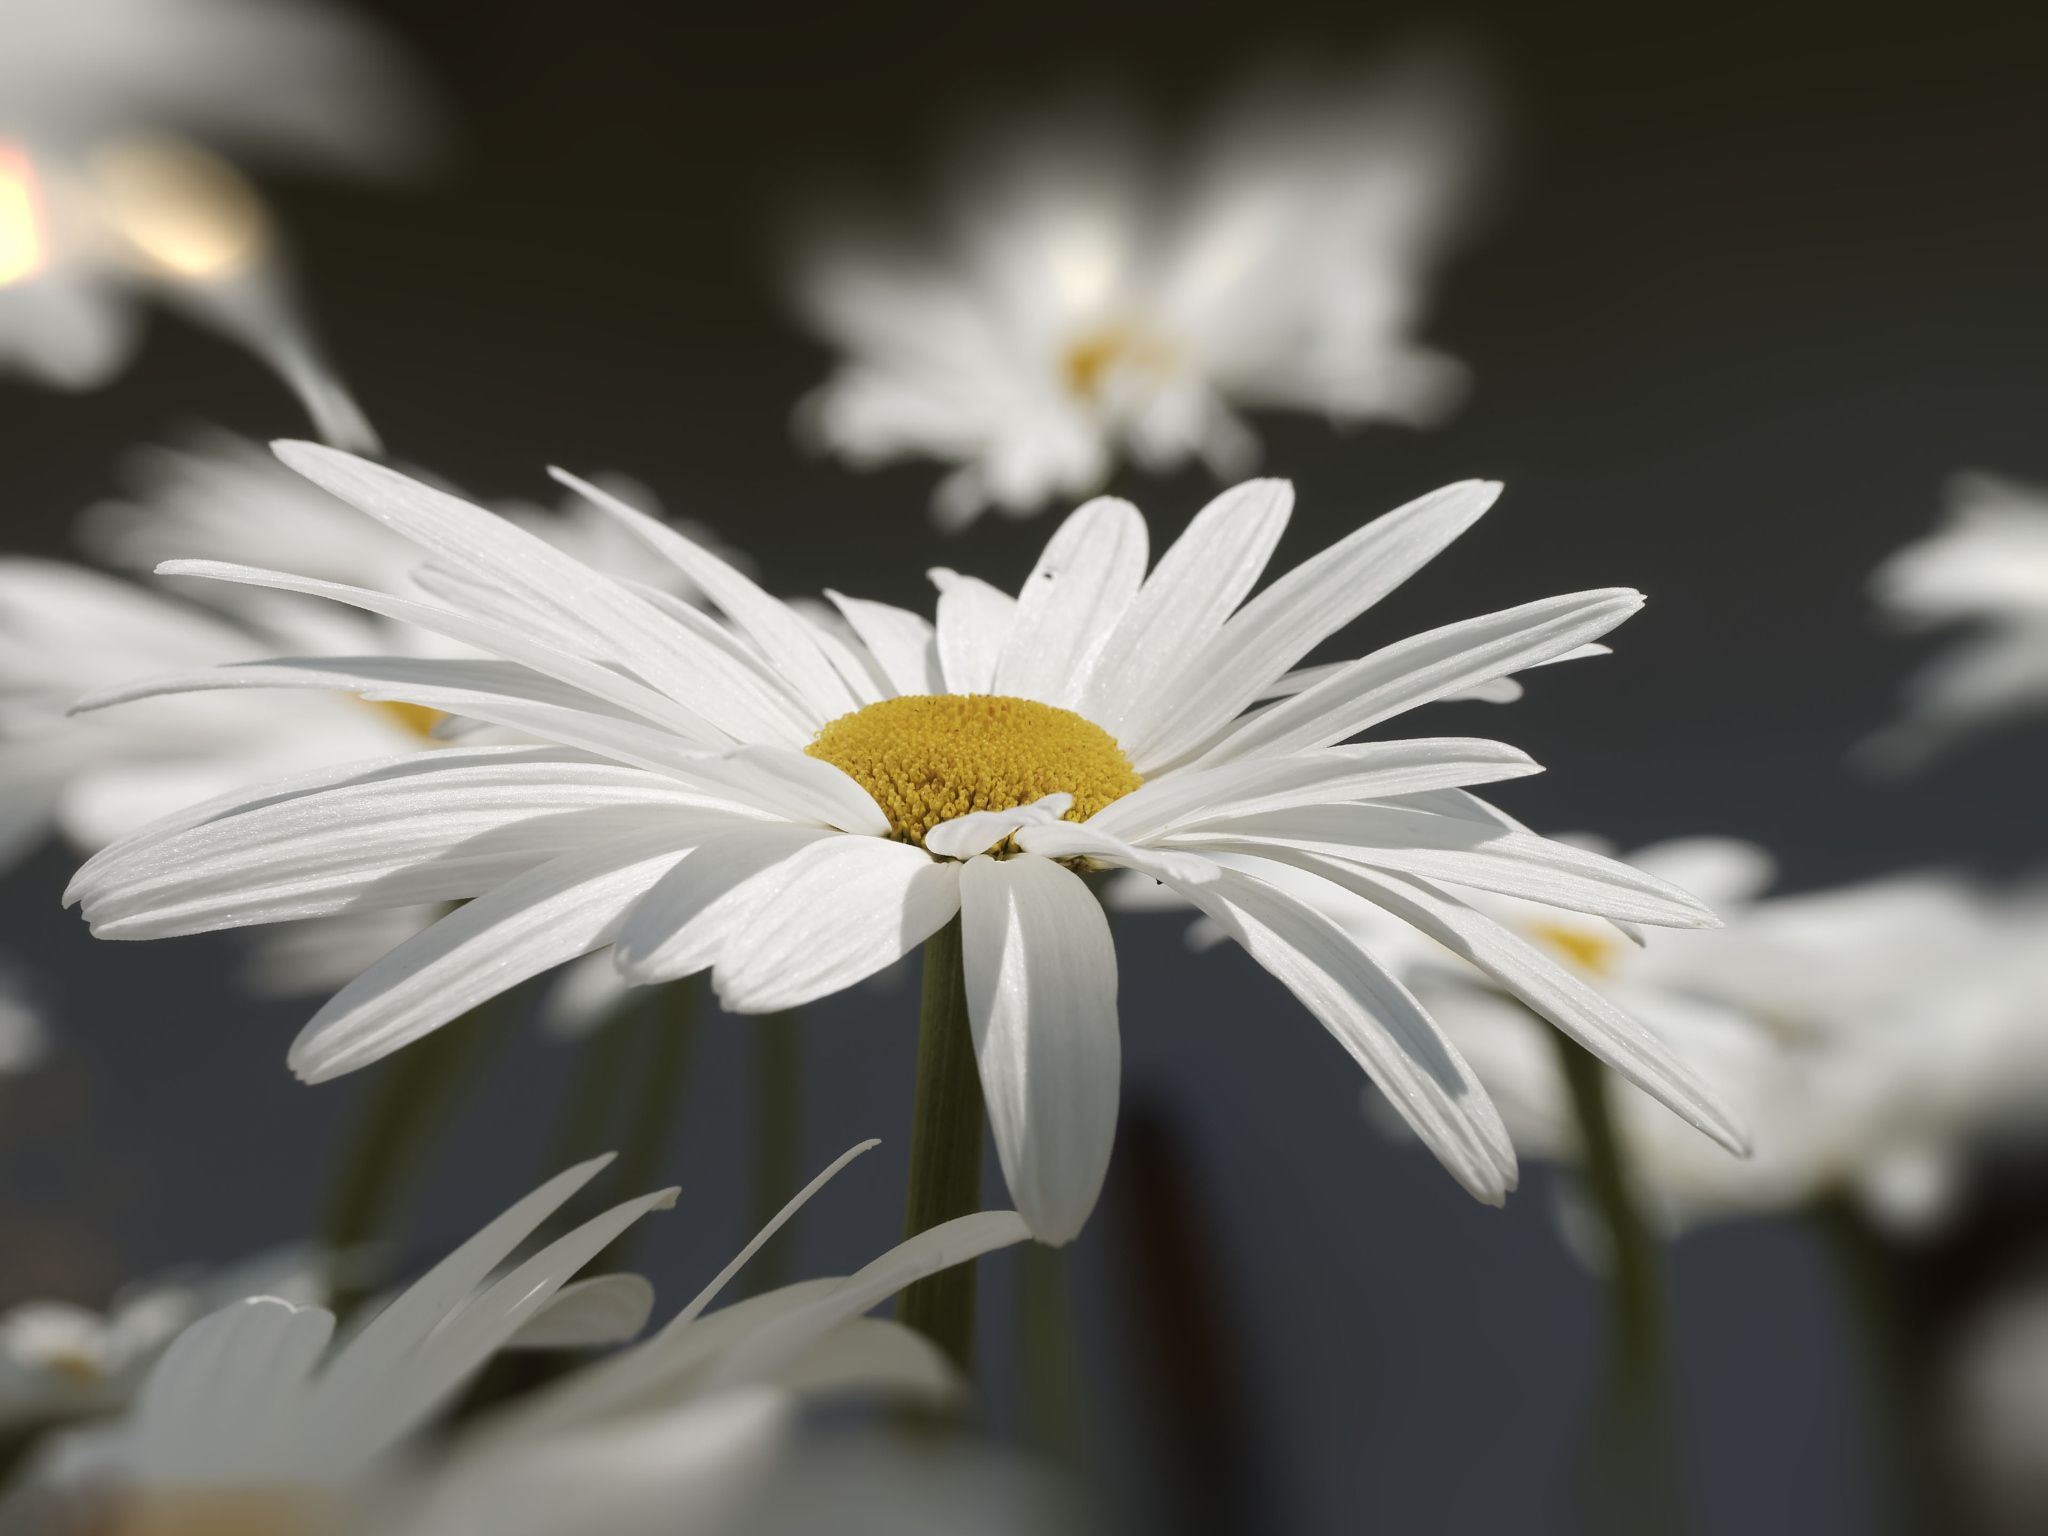 What the petals would say. - Daisy. Beautiful lady in white dress